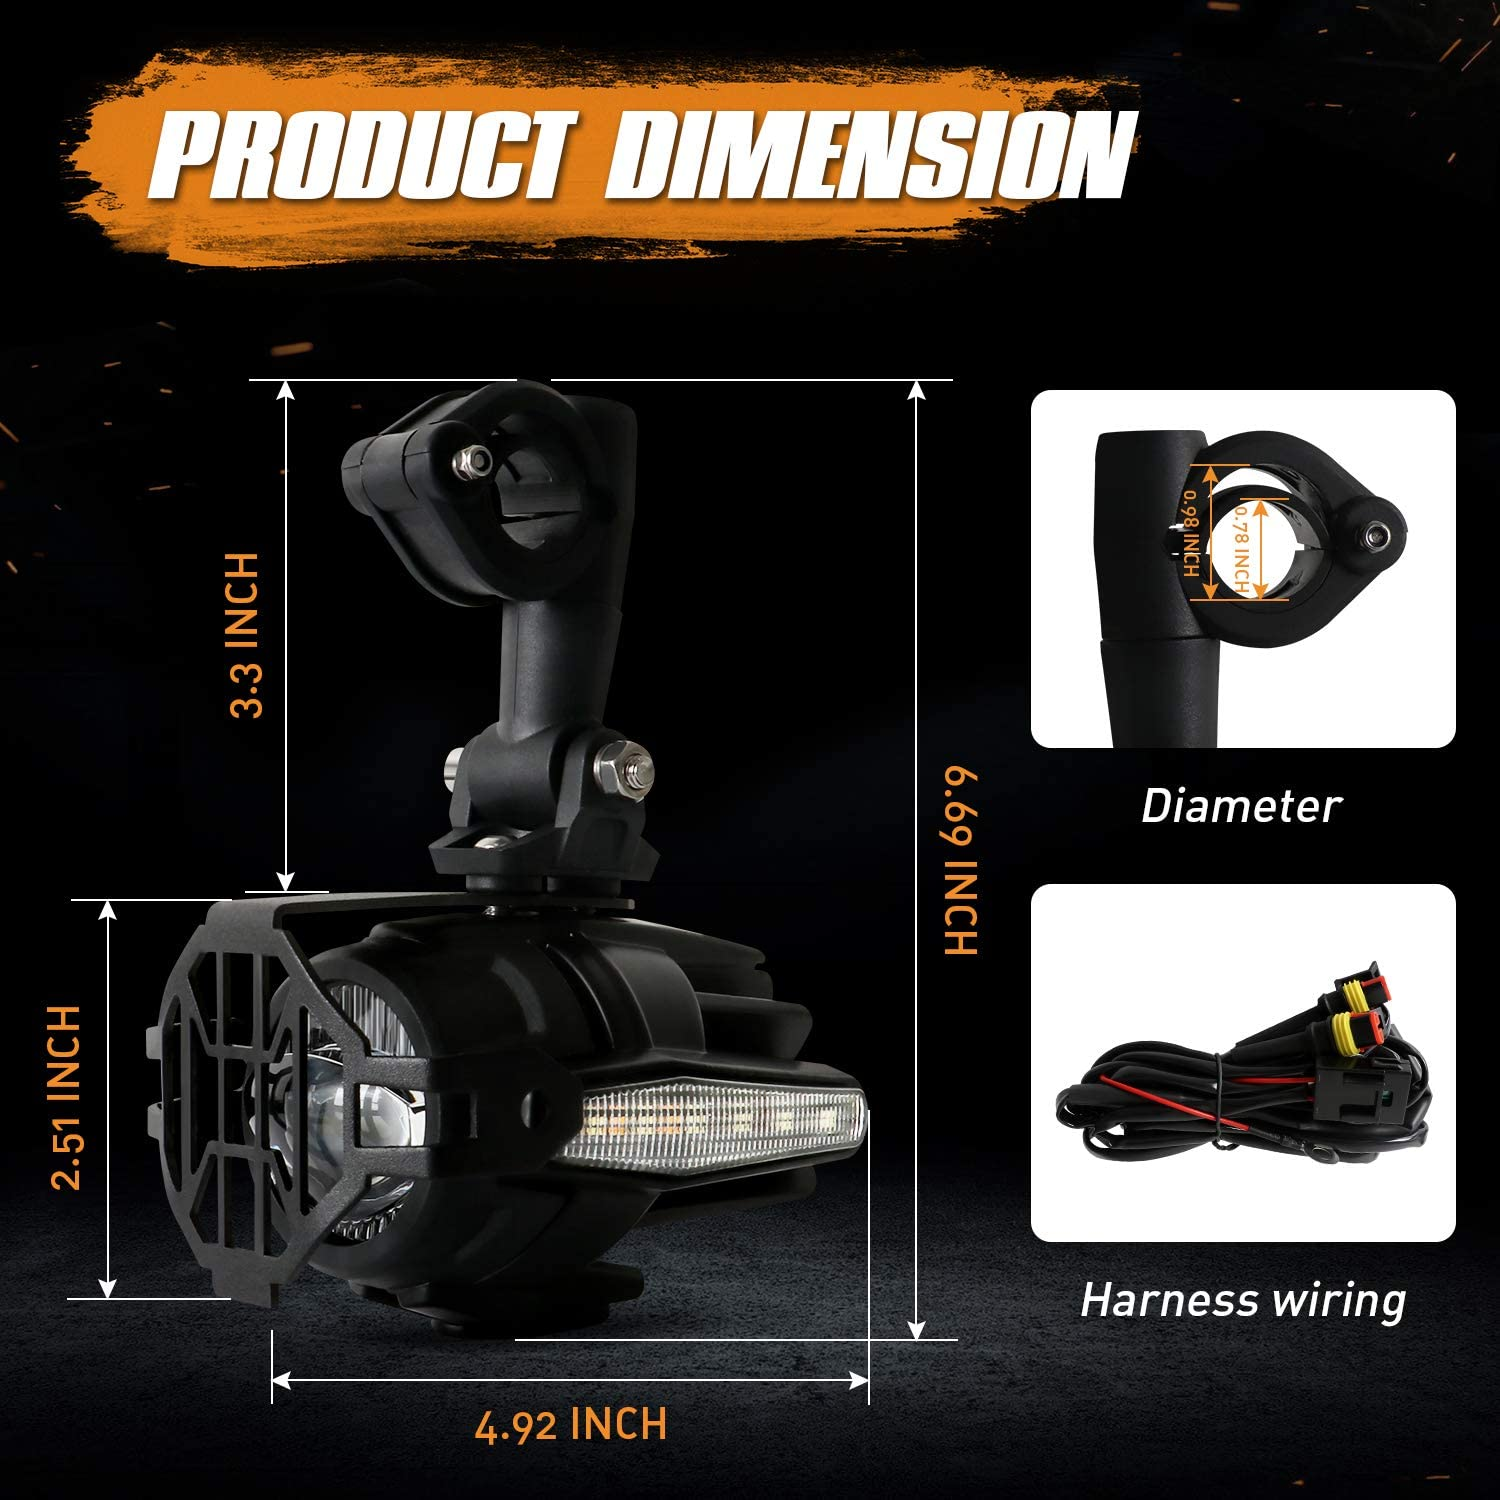 LED Auxiliary Lights for Motorcycle BMW K1600 R1200G AAIWA 2pcs 40W 6000K Fog Driving Light Kits with Amber Turn Signal Protect Guards Wiring Harness 2 Years Warranty